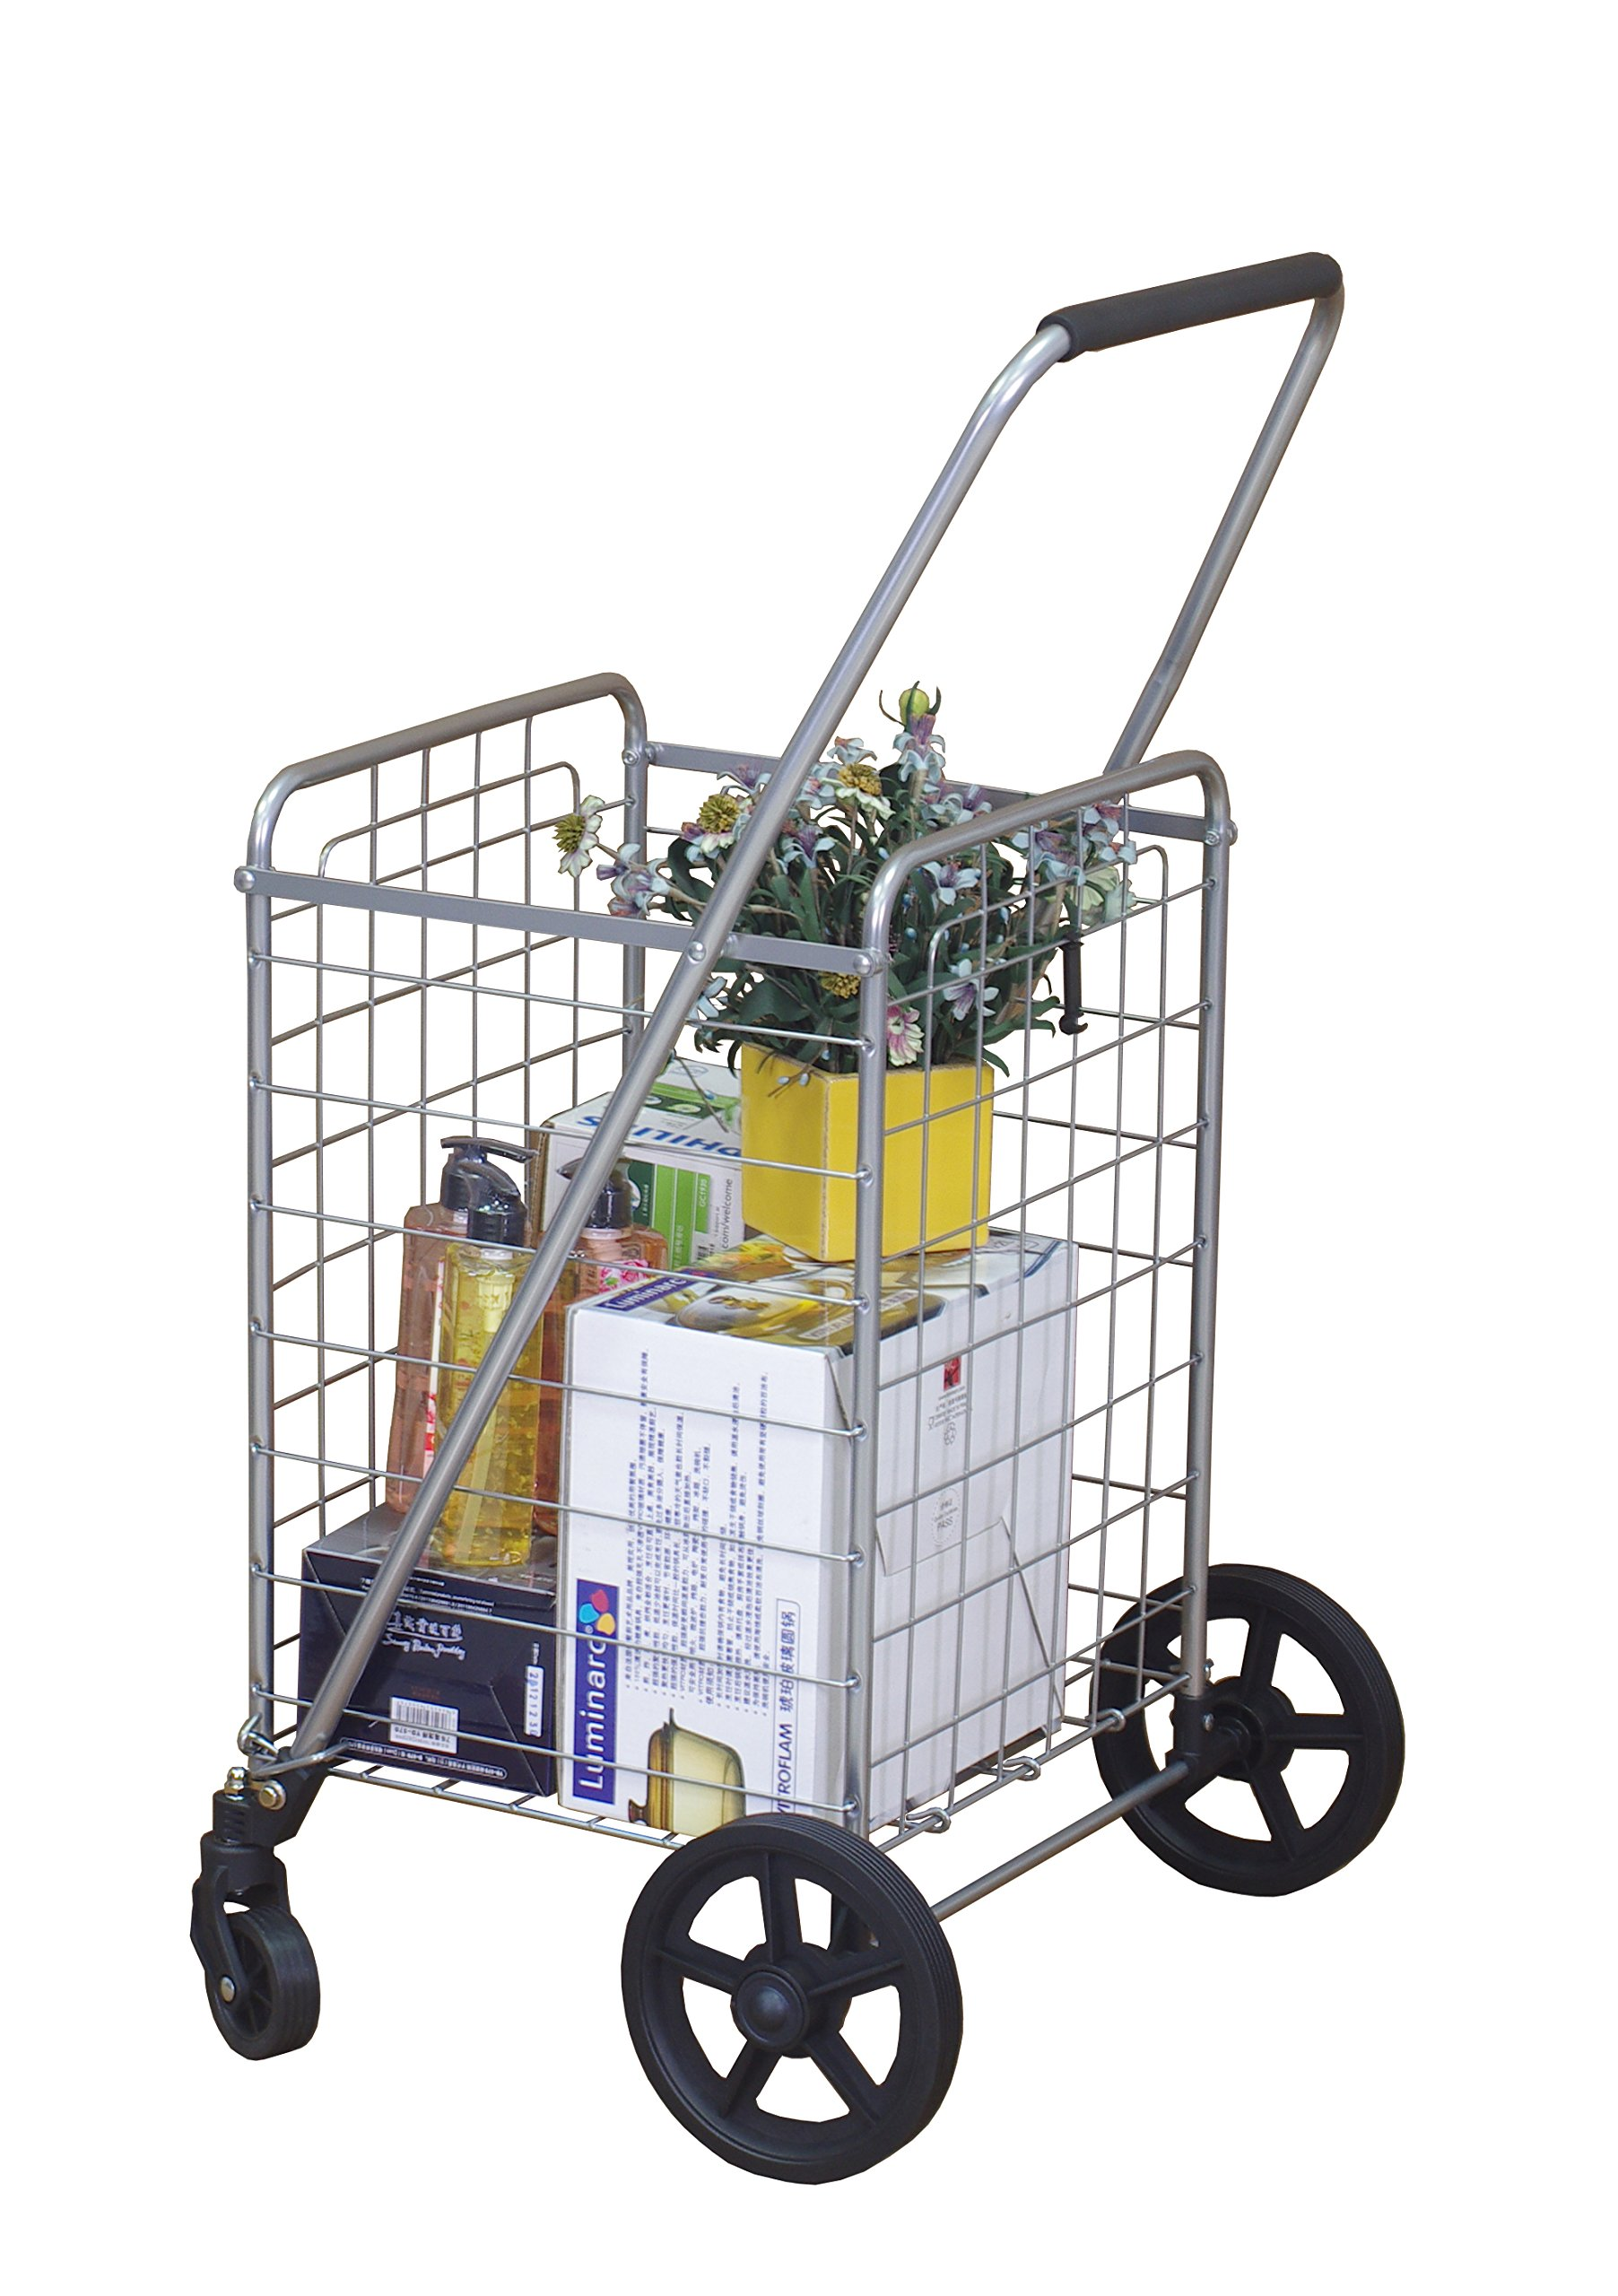 Wellmax WM99024S Grocery Utility Shopping Cart, Easily Collapsible and Foldable to Save Space and Heavy Duty, Light Weight Trolley with Rolling Swivel Wheels by Wellmax